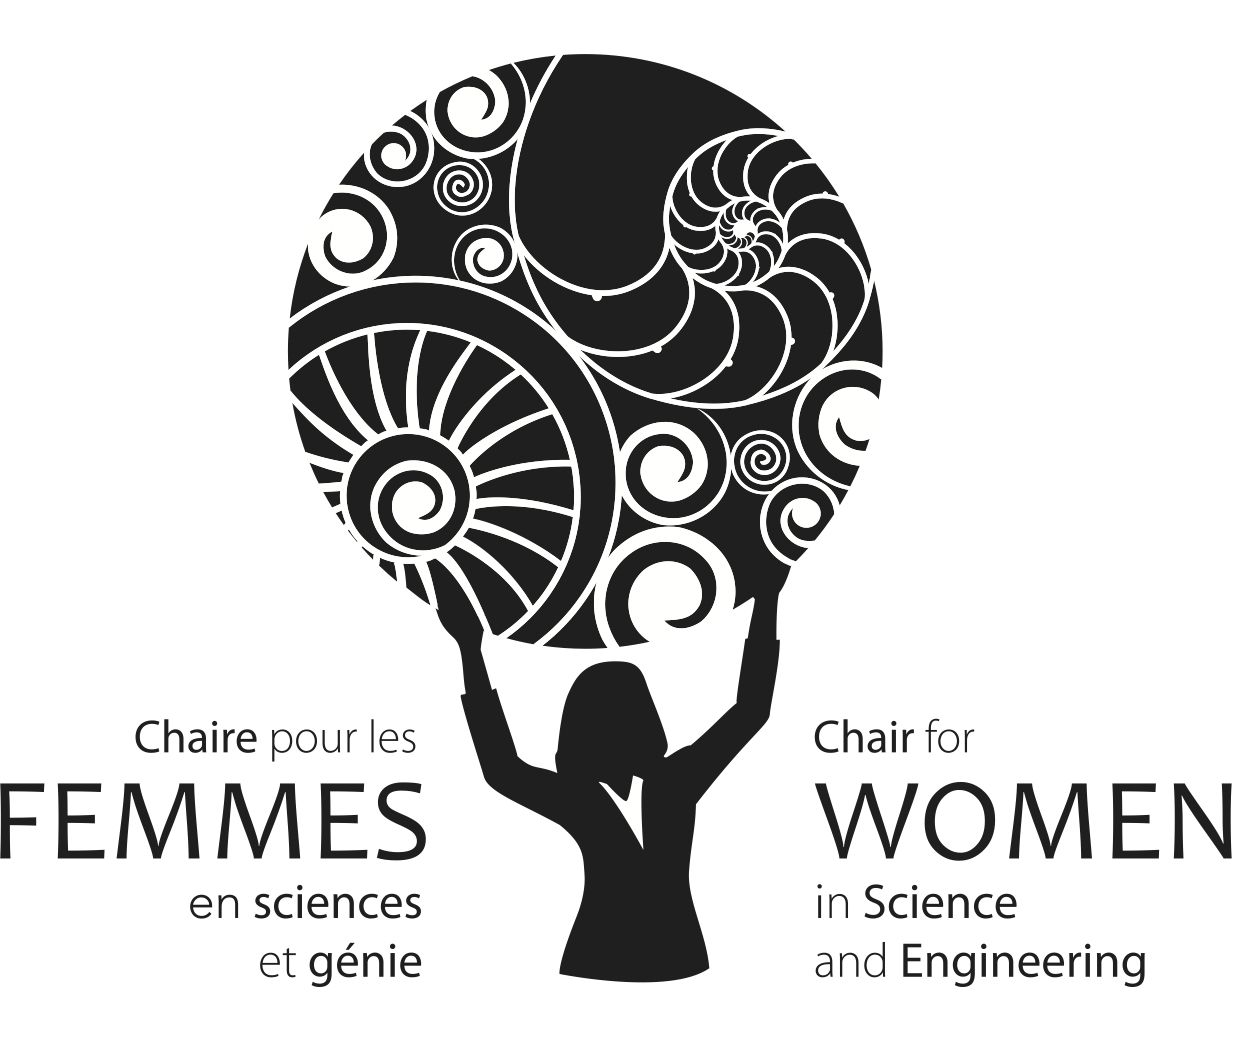 Nserc Chair Design Engineering Covers For Wedding Rental The Pratt Whitney Women In Science And Ontario Is A Program To Advance Fields Of